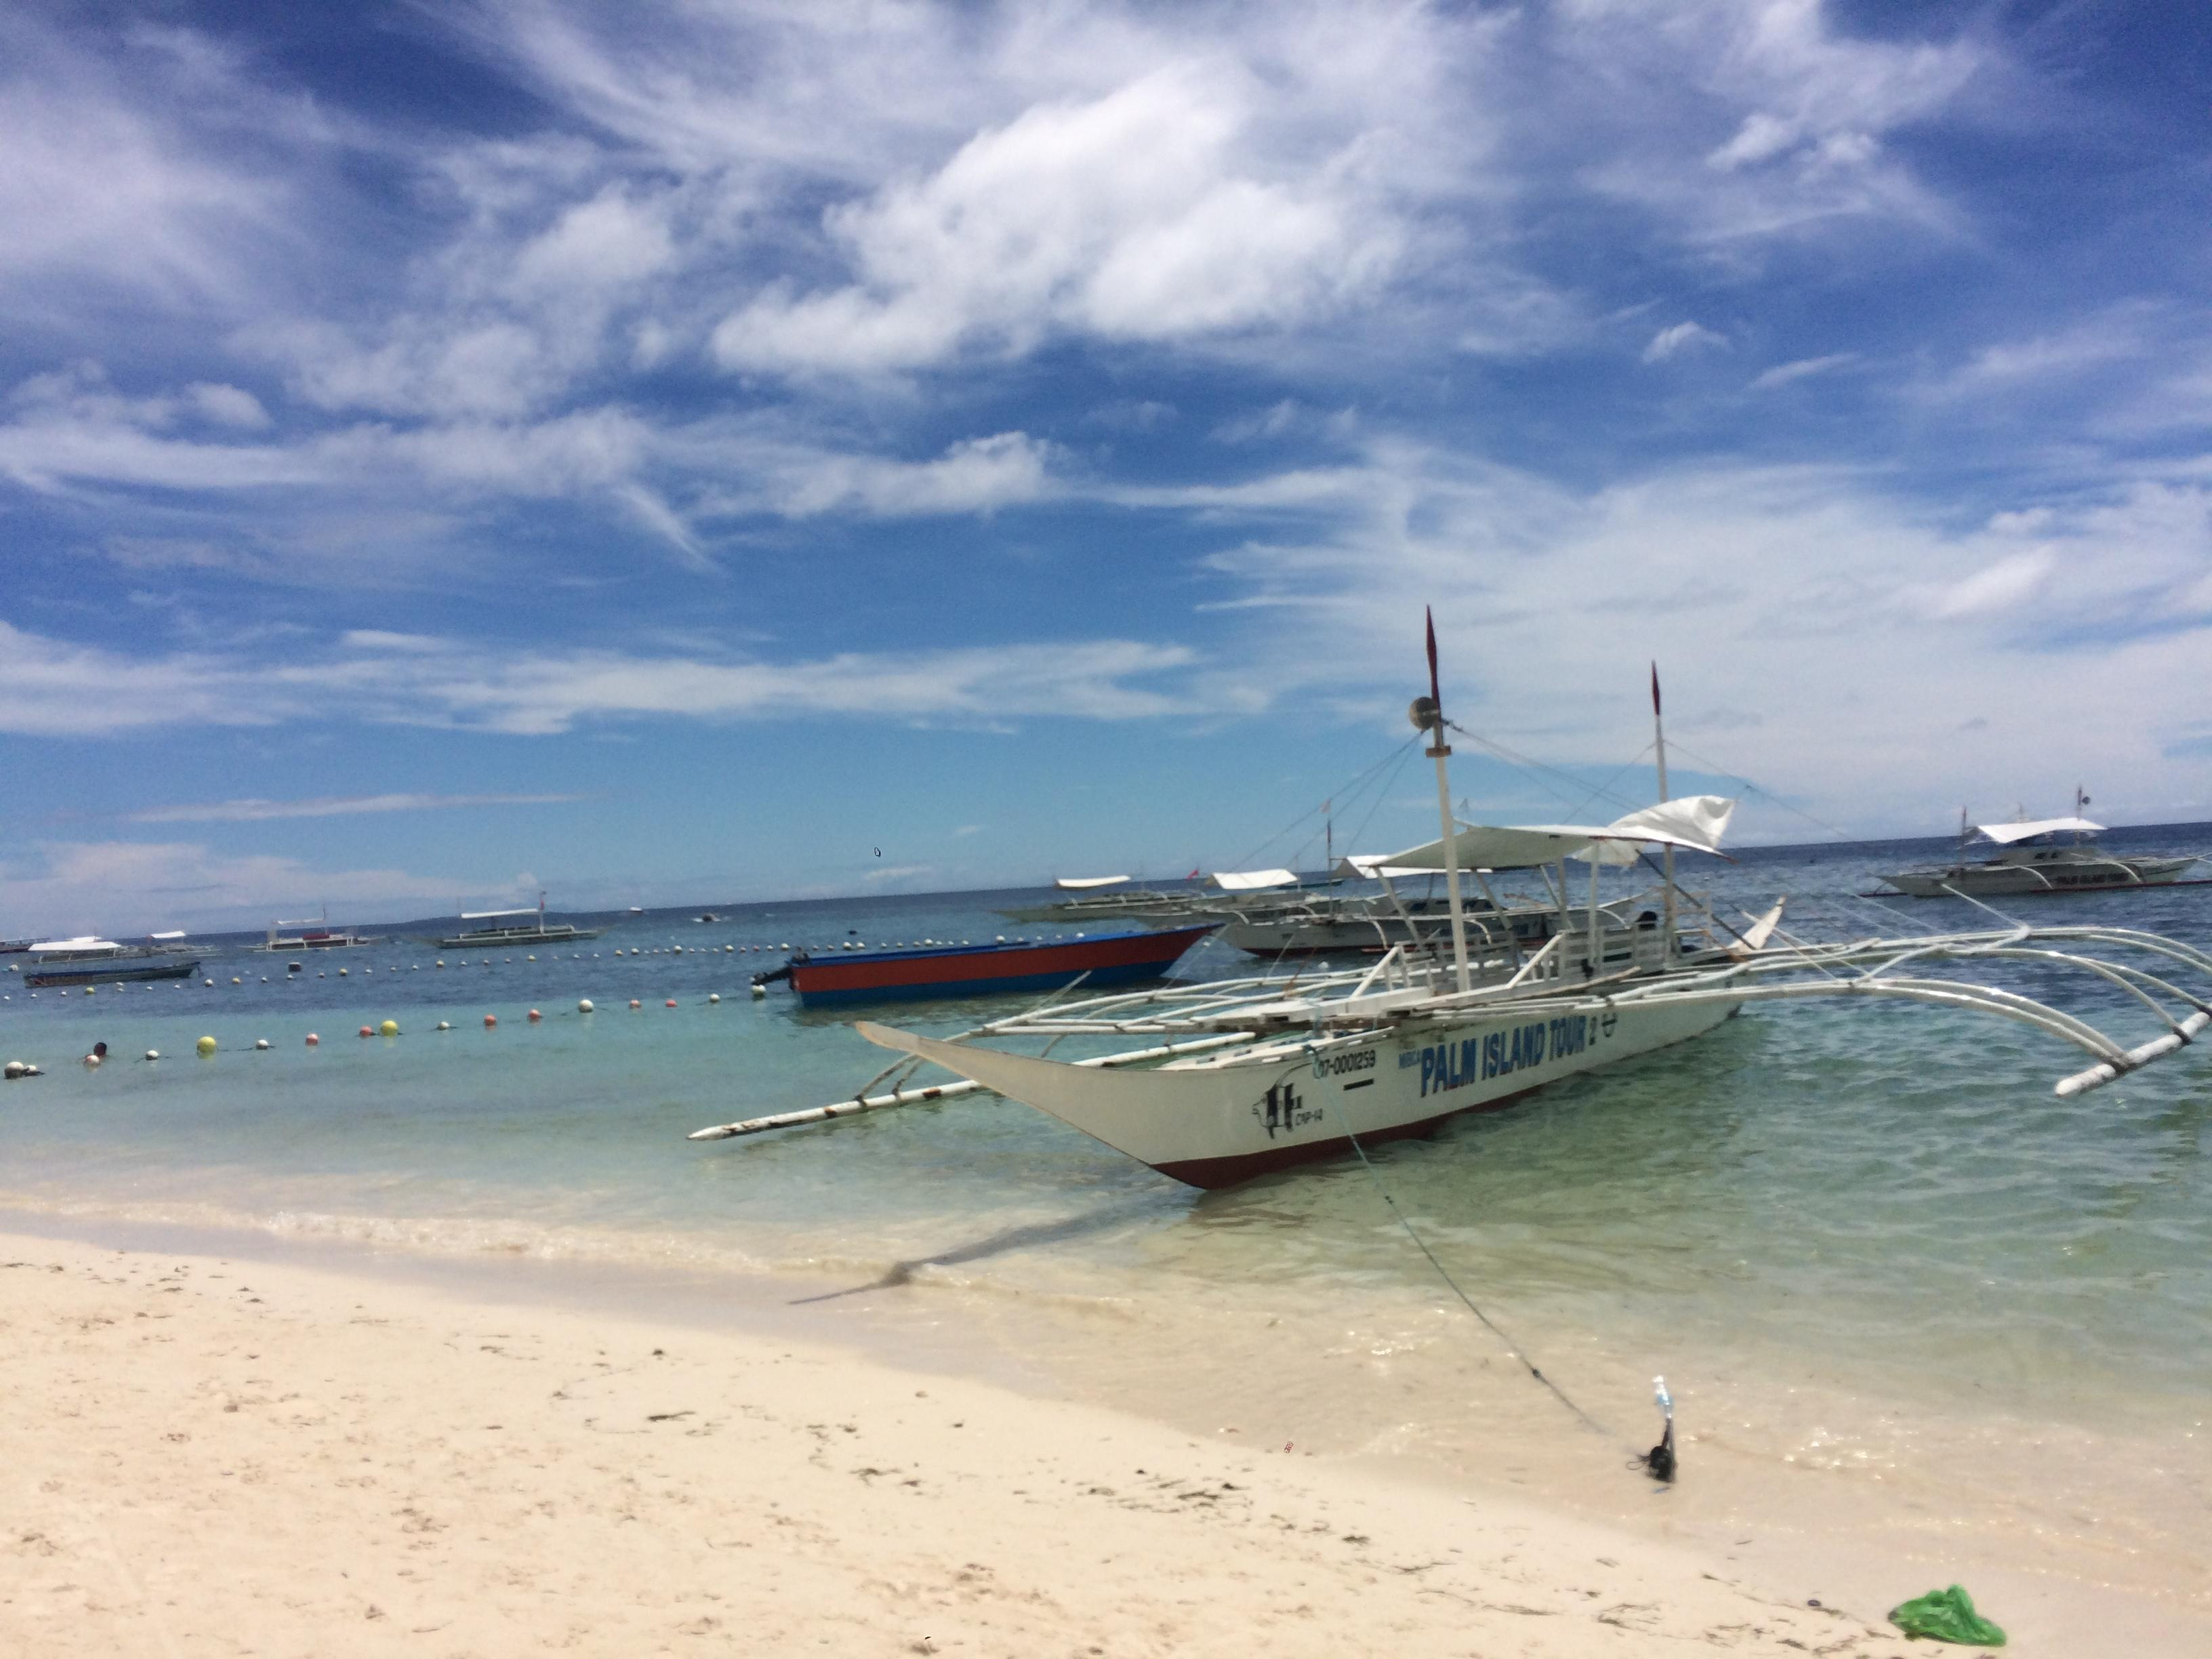 IMG 4493 - Philippines Highlights: One Day Bohol Itinerary in Pictures